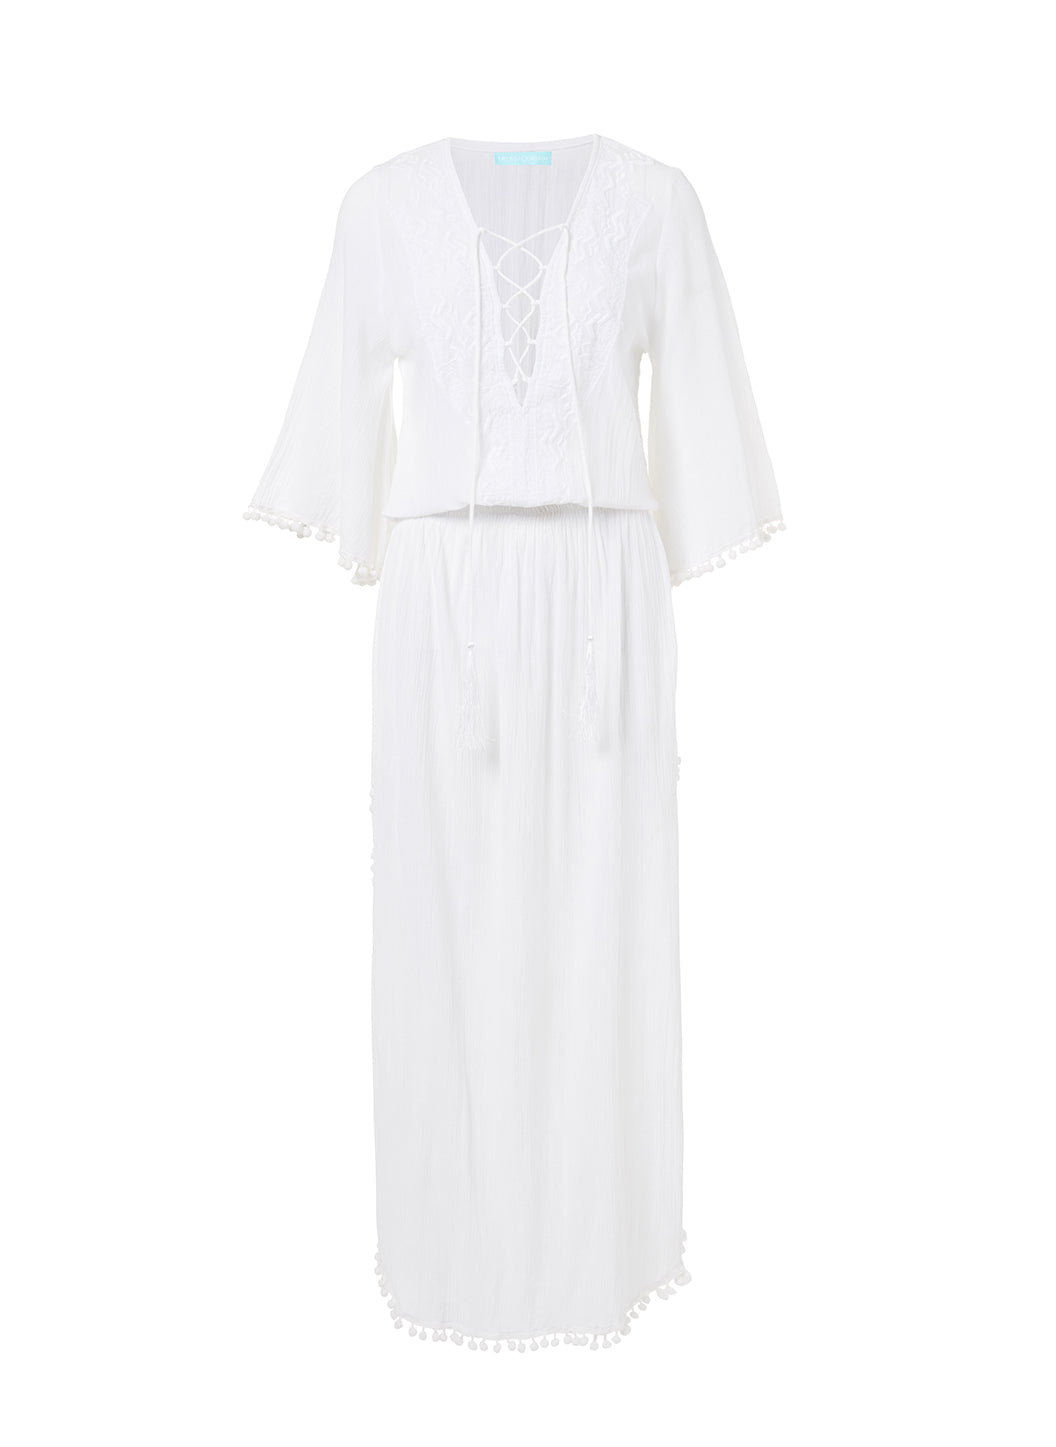 Kari White Lace-Up Embroidered Long Dress - Melissa Odabash Beachwear